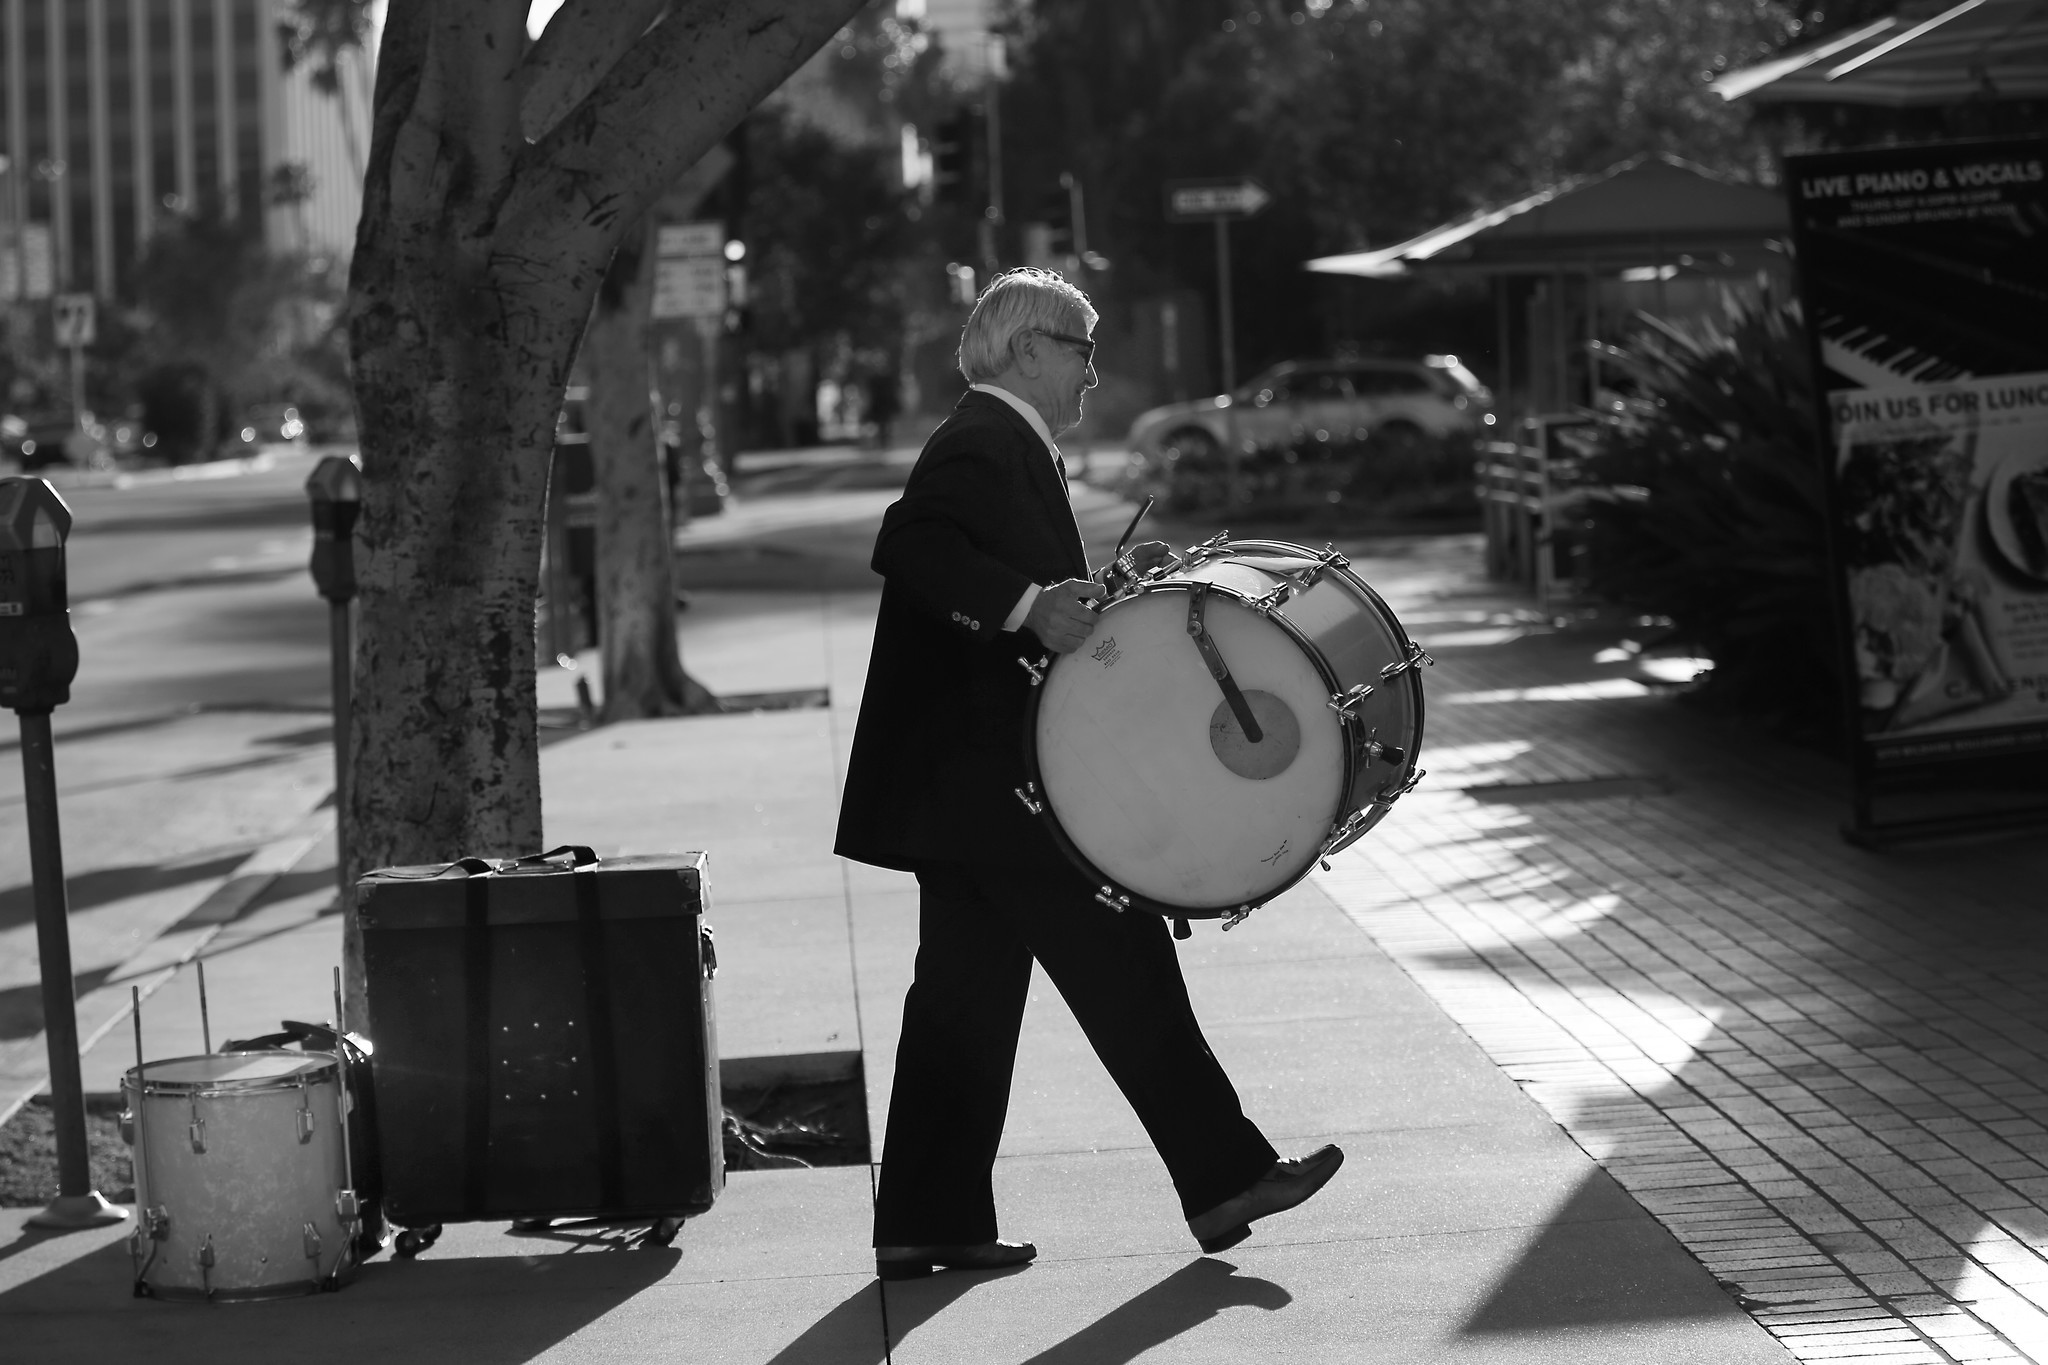 Wearing a suit and tie Steve Hideg, 85, carries his drums into Callender's Grill before his gig in Los Angeles.